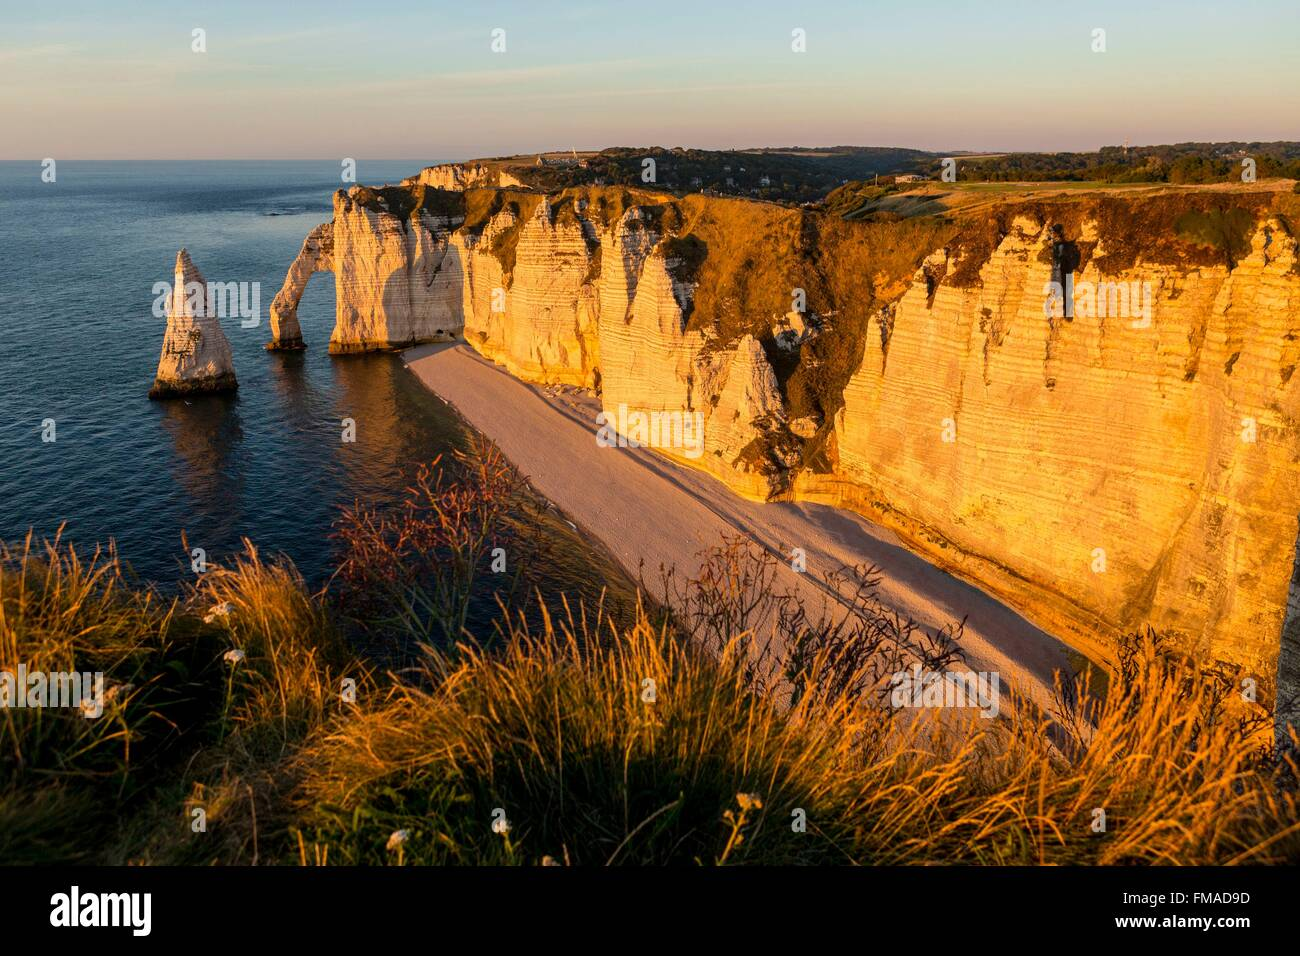 France, Seine Maritime, Caux, Alabaster Coast, Etretat, the Aval cliff, the Arch and the Aiguille (Needle) d'Aval - Stock Image